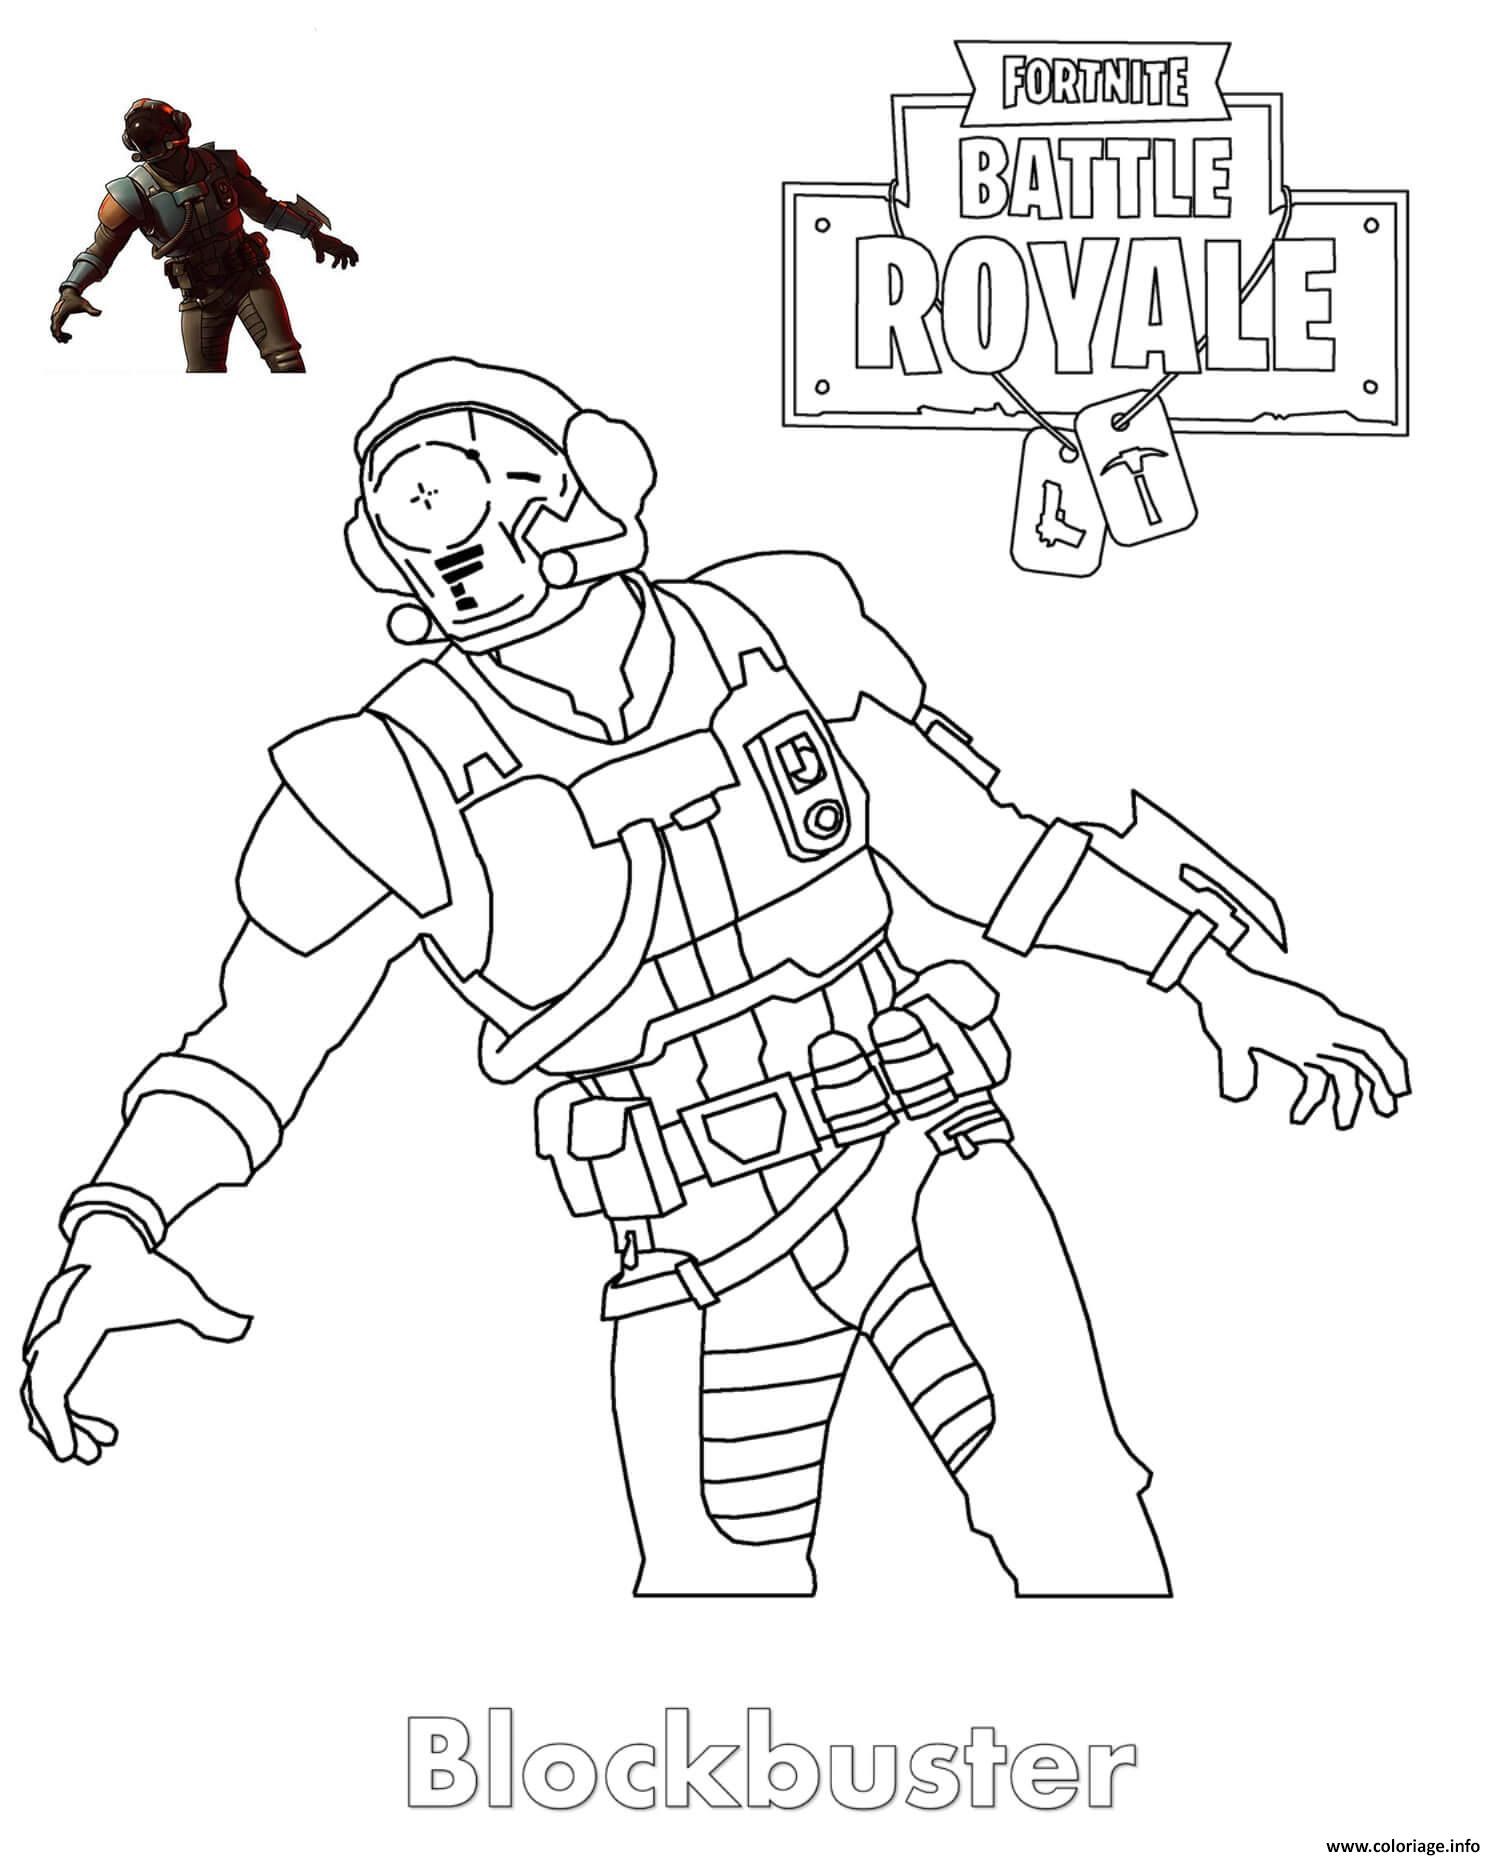 Coloriage Blockbuster Fortnite Skin Jecolorie Com